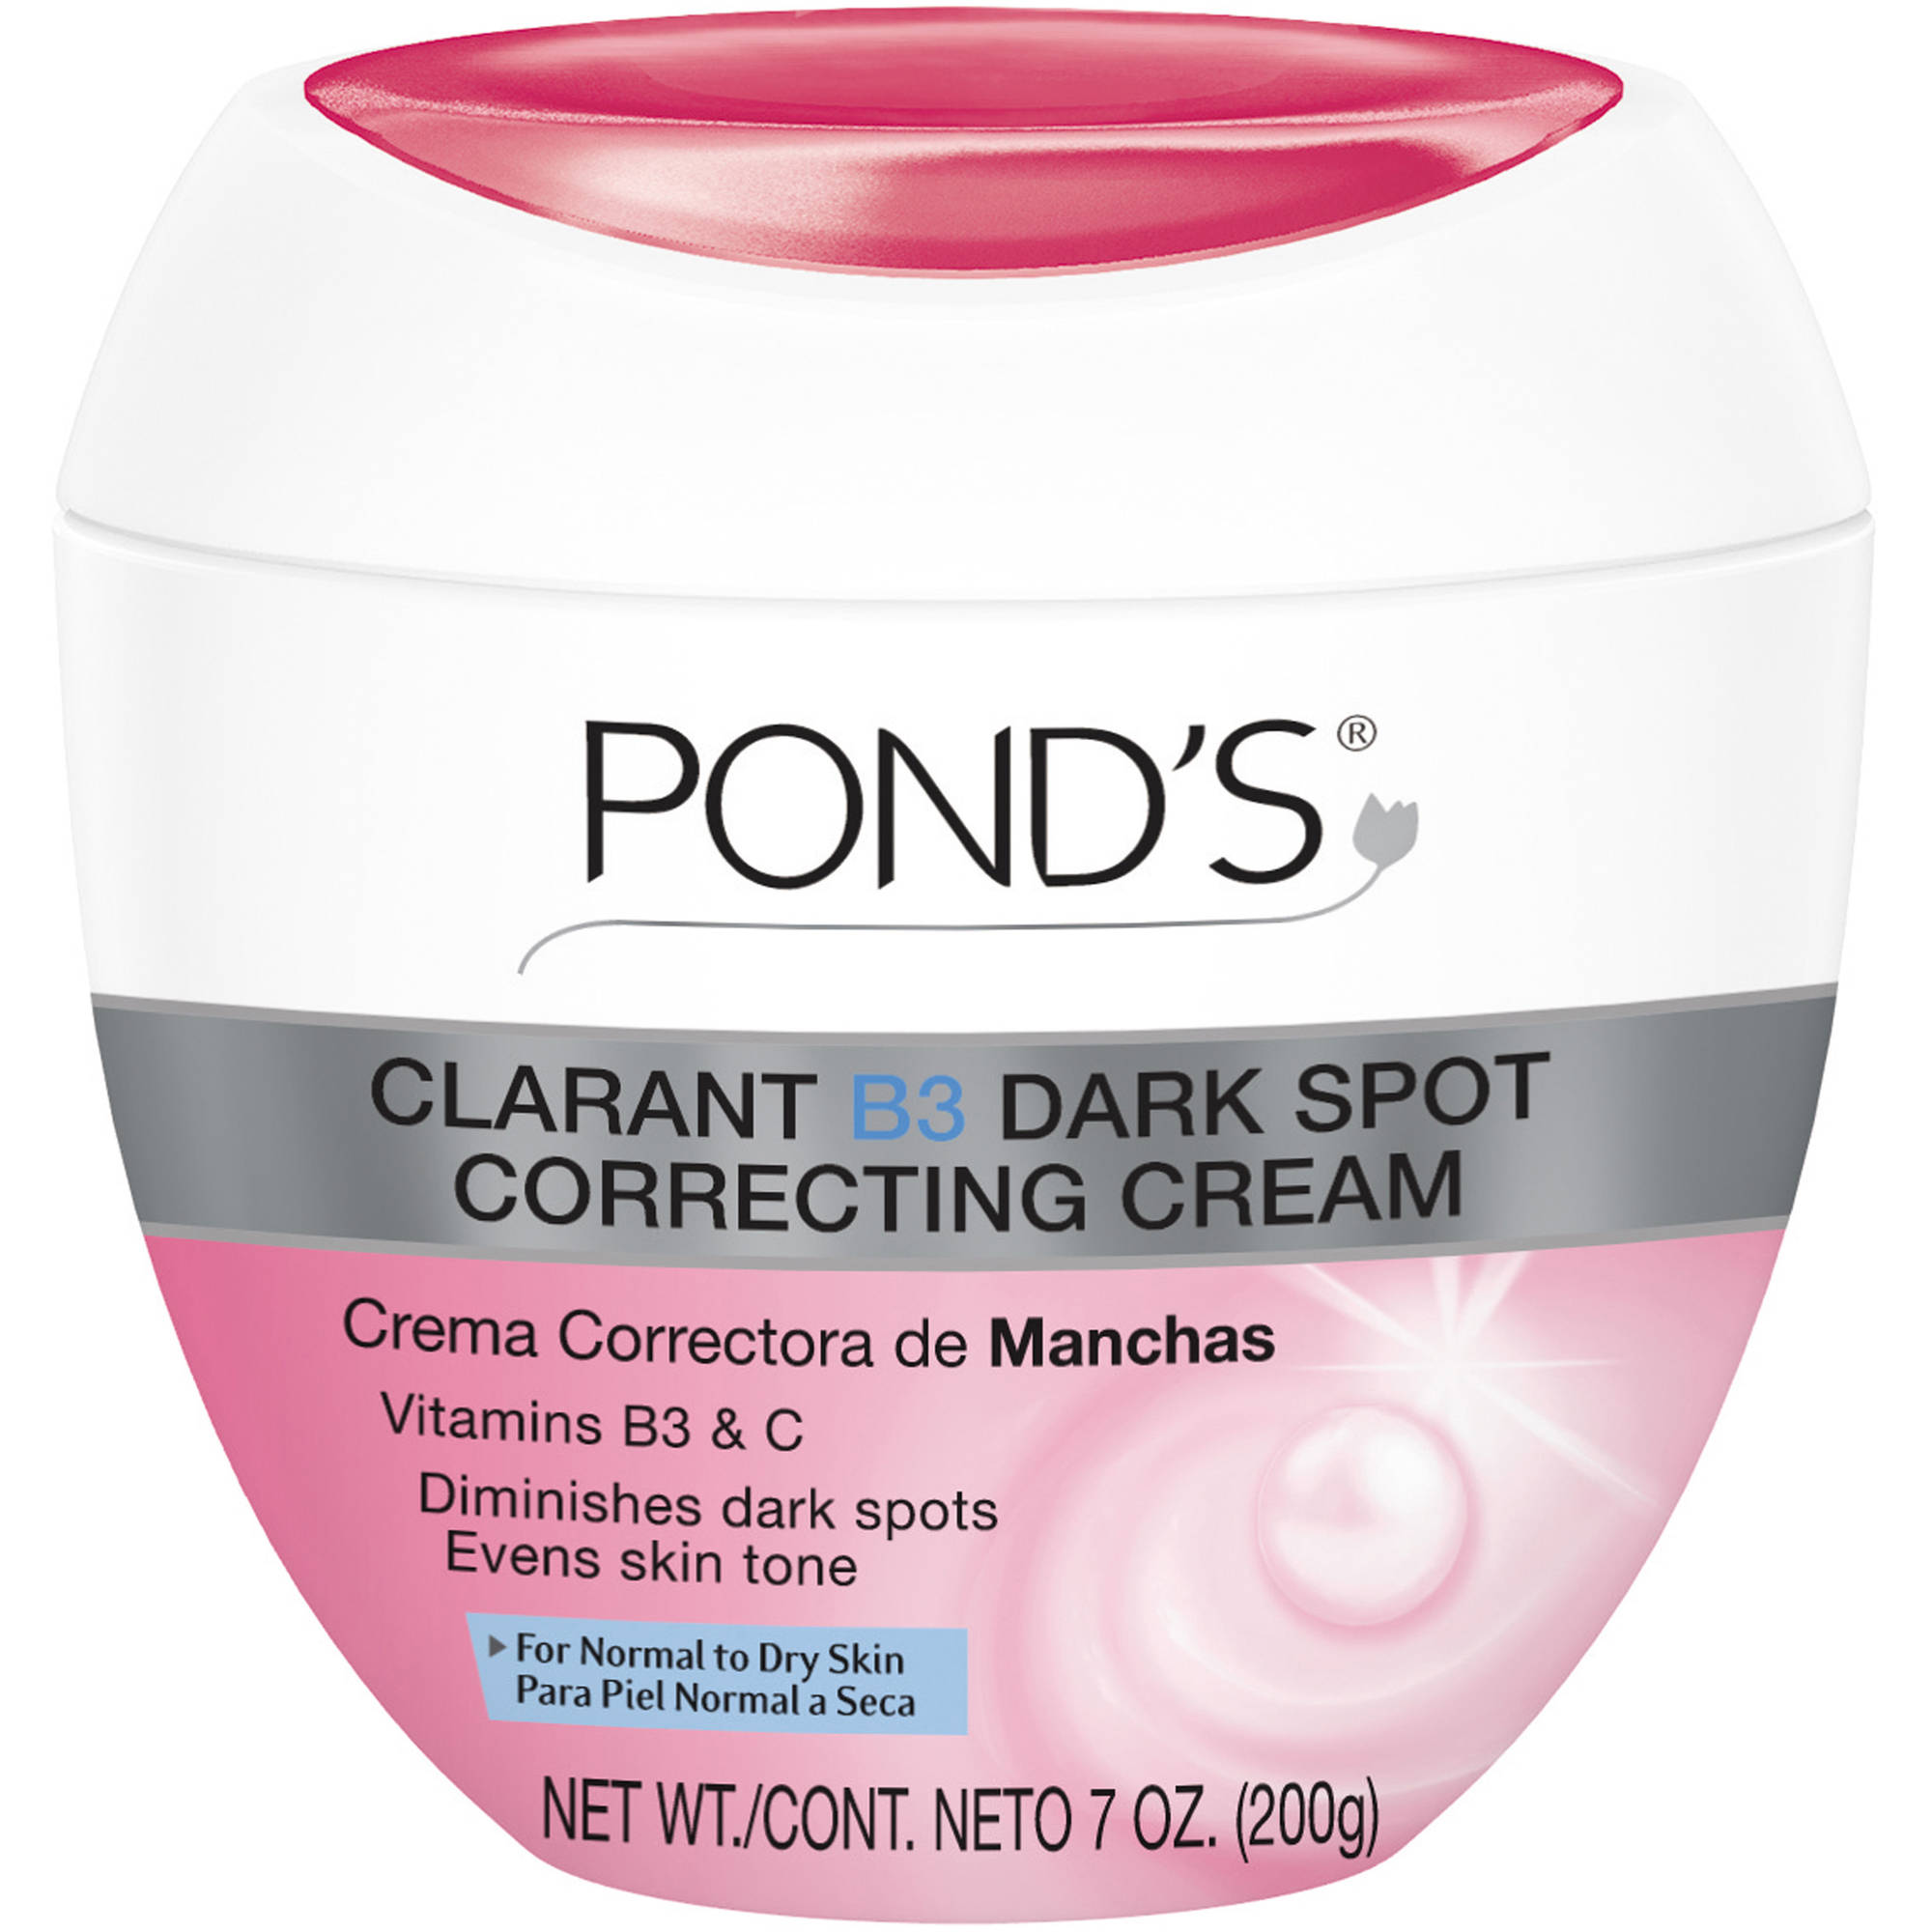 Pond's Clarant B3 Dark Spot Normal to Dry Skin Correcting Cream, 7 fl oz